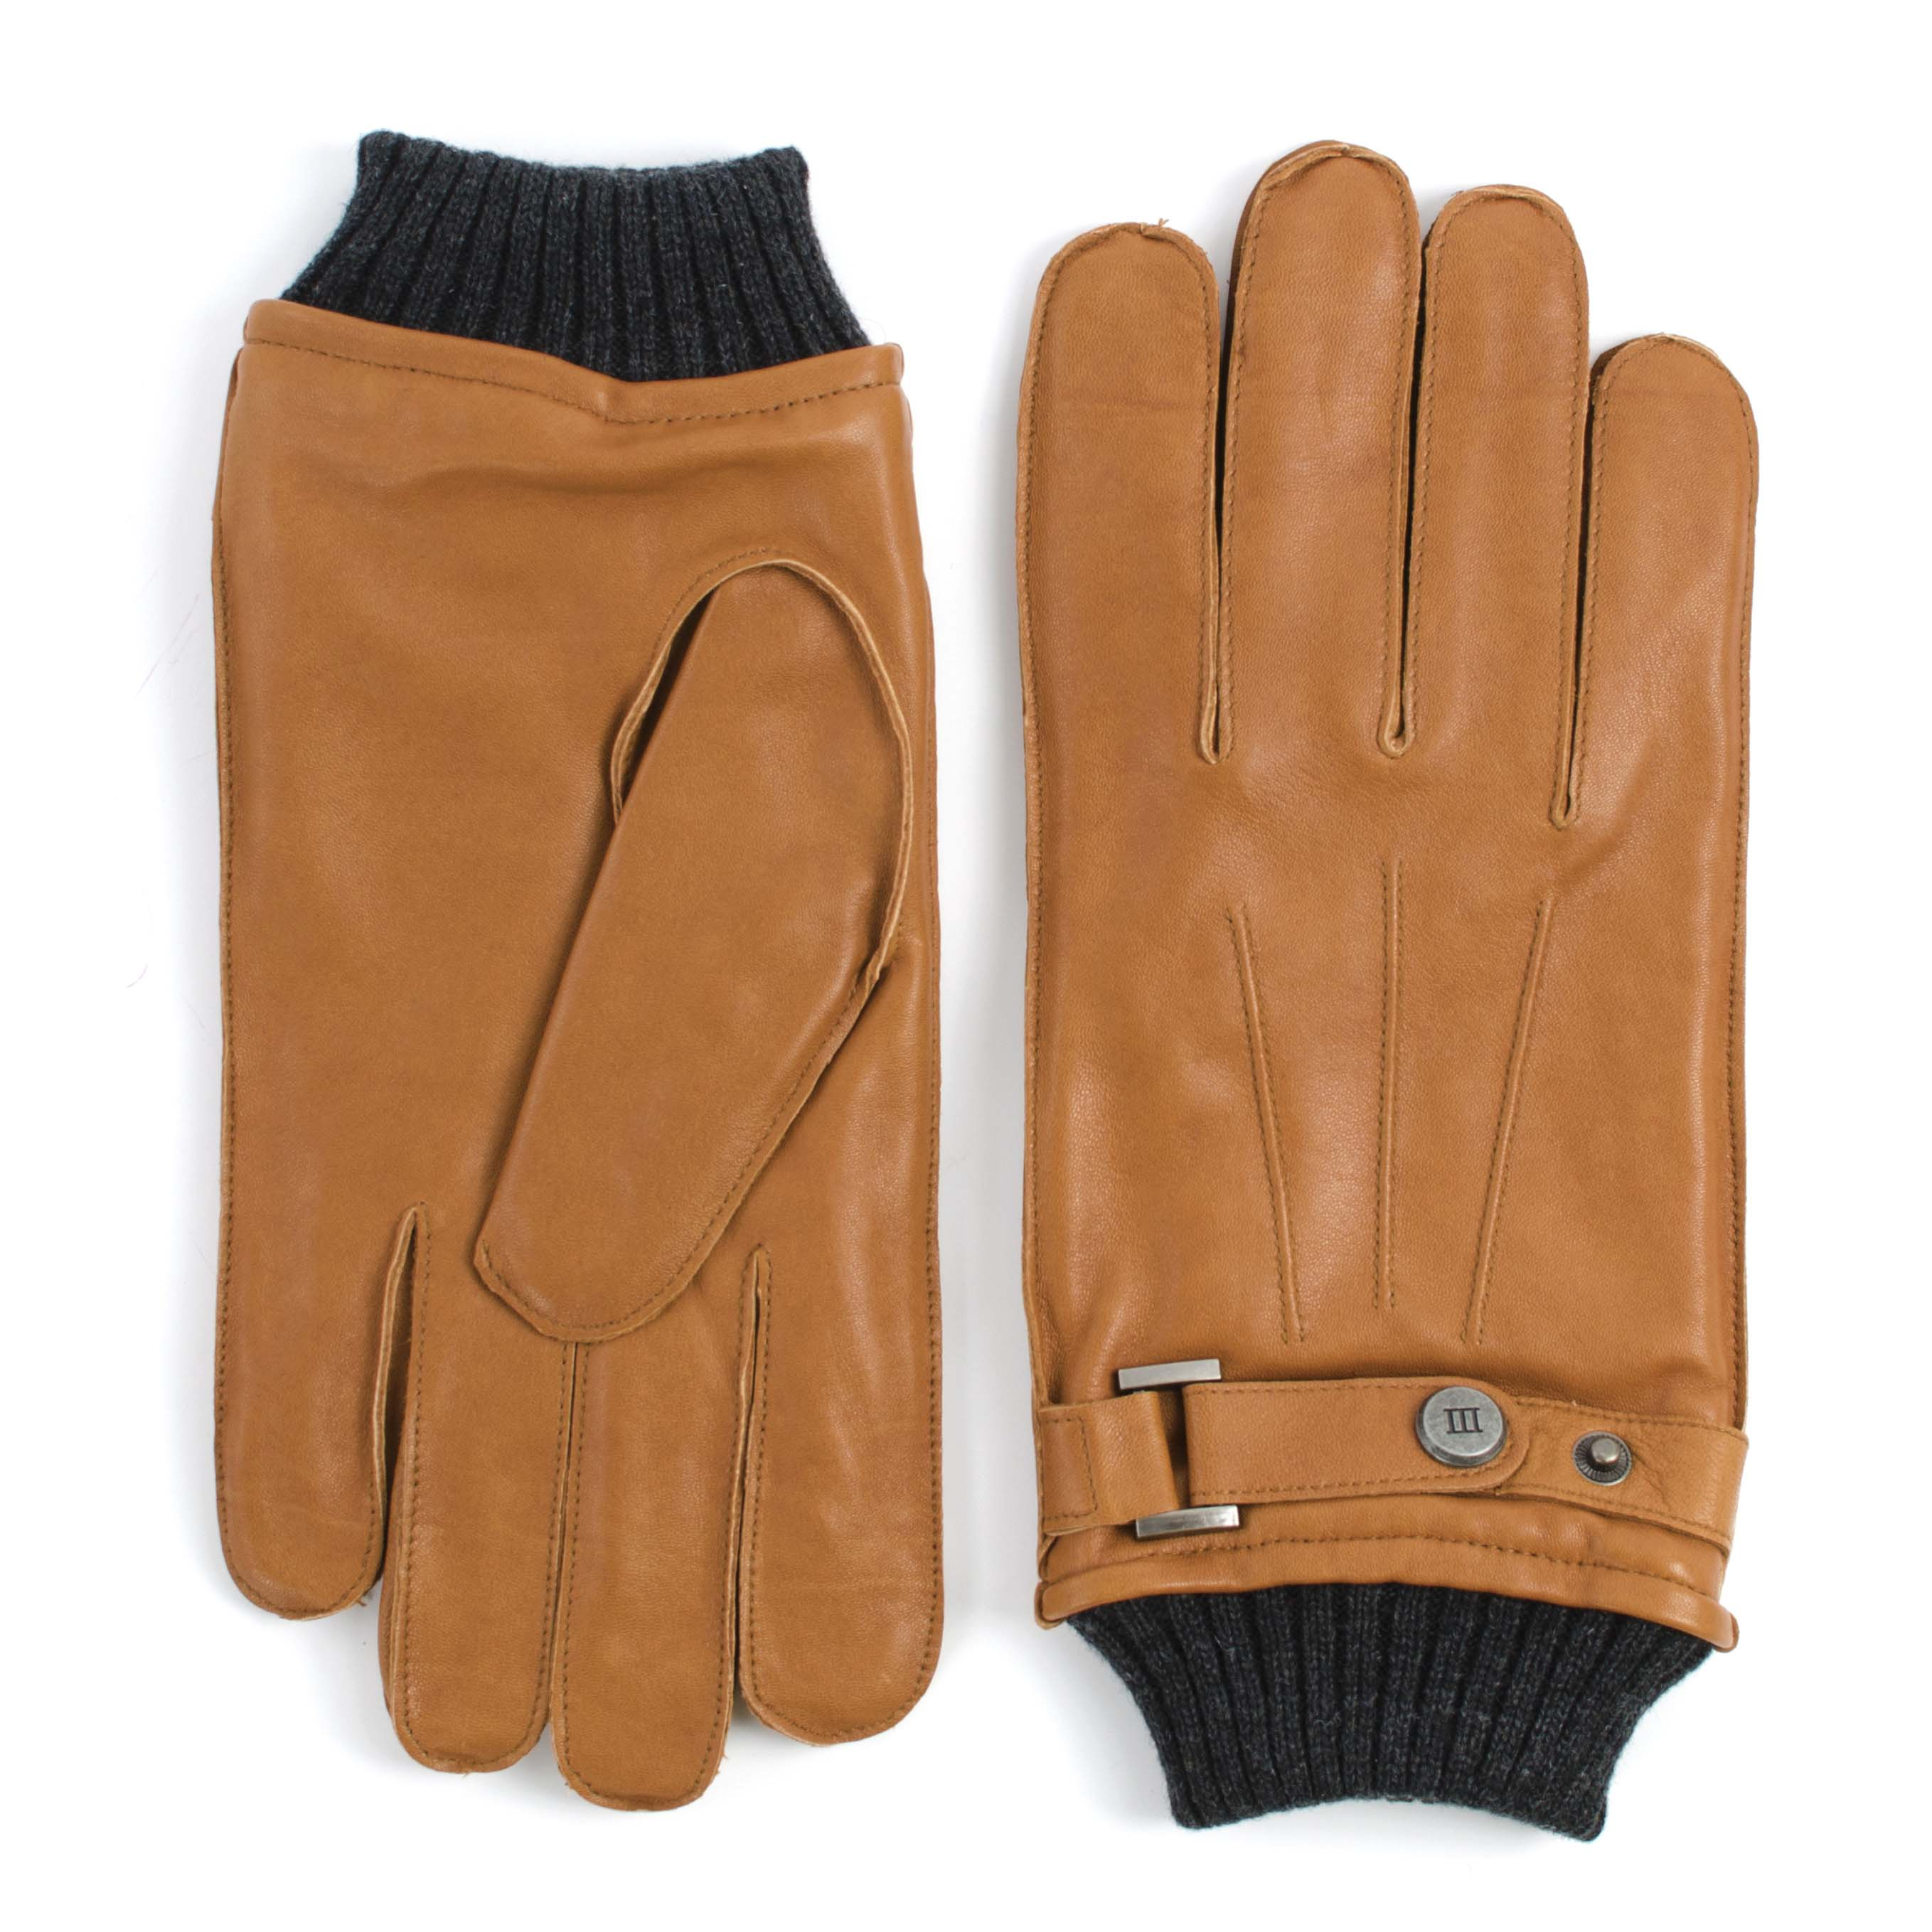 Gloves knitted cuff tan analine